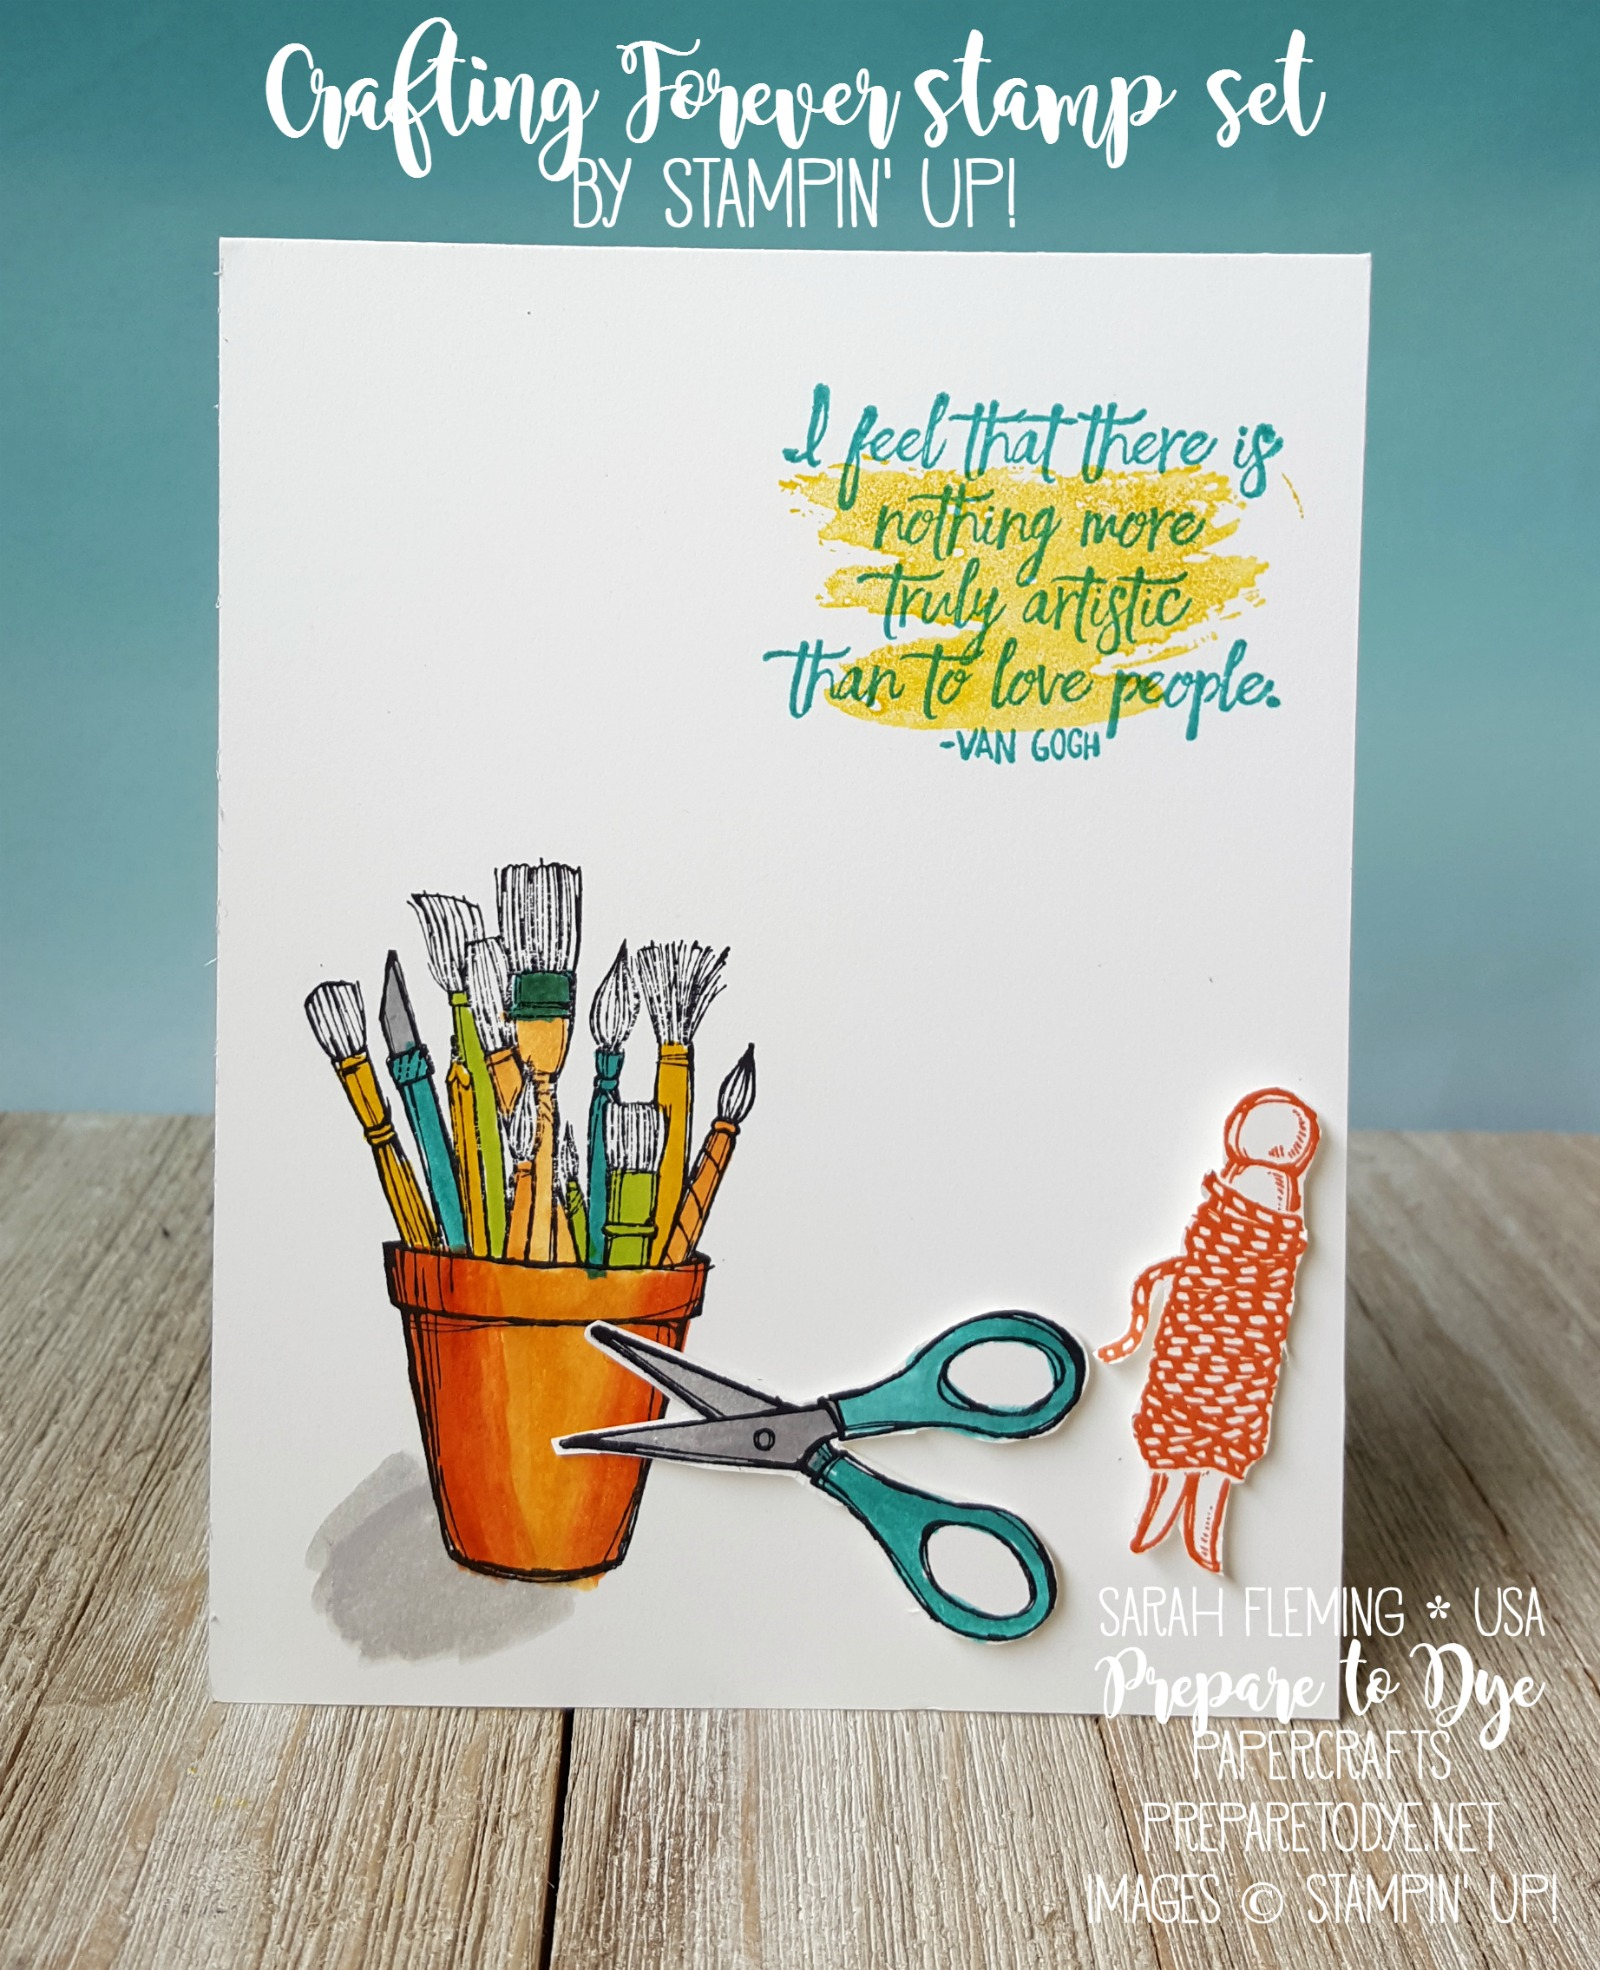 Stampin' Up! Crafting Forever and Just Add Text with Sunshine Sayings - new annual catalog sneak peek - Sarah Fleming - Prepare to Dye Papercrafts